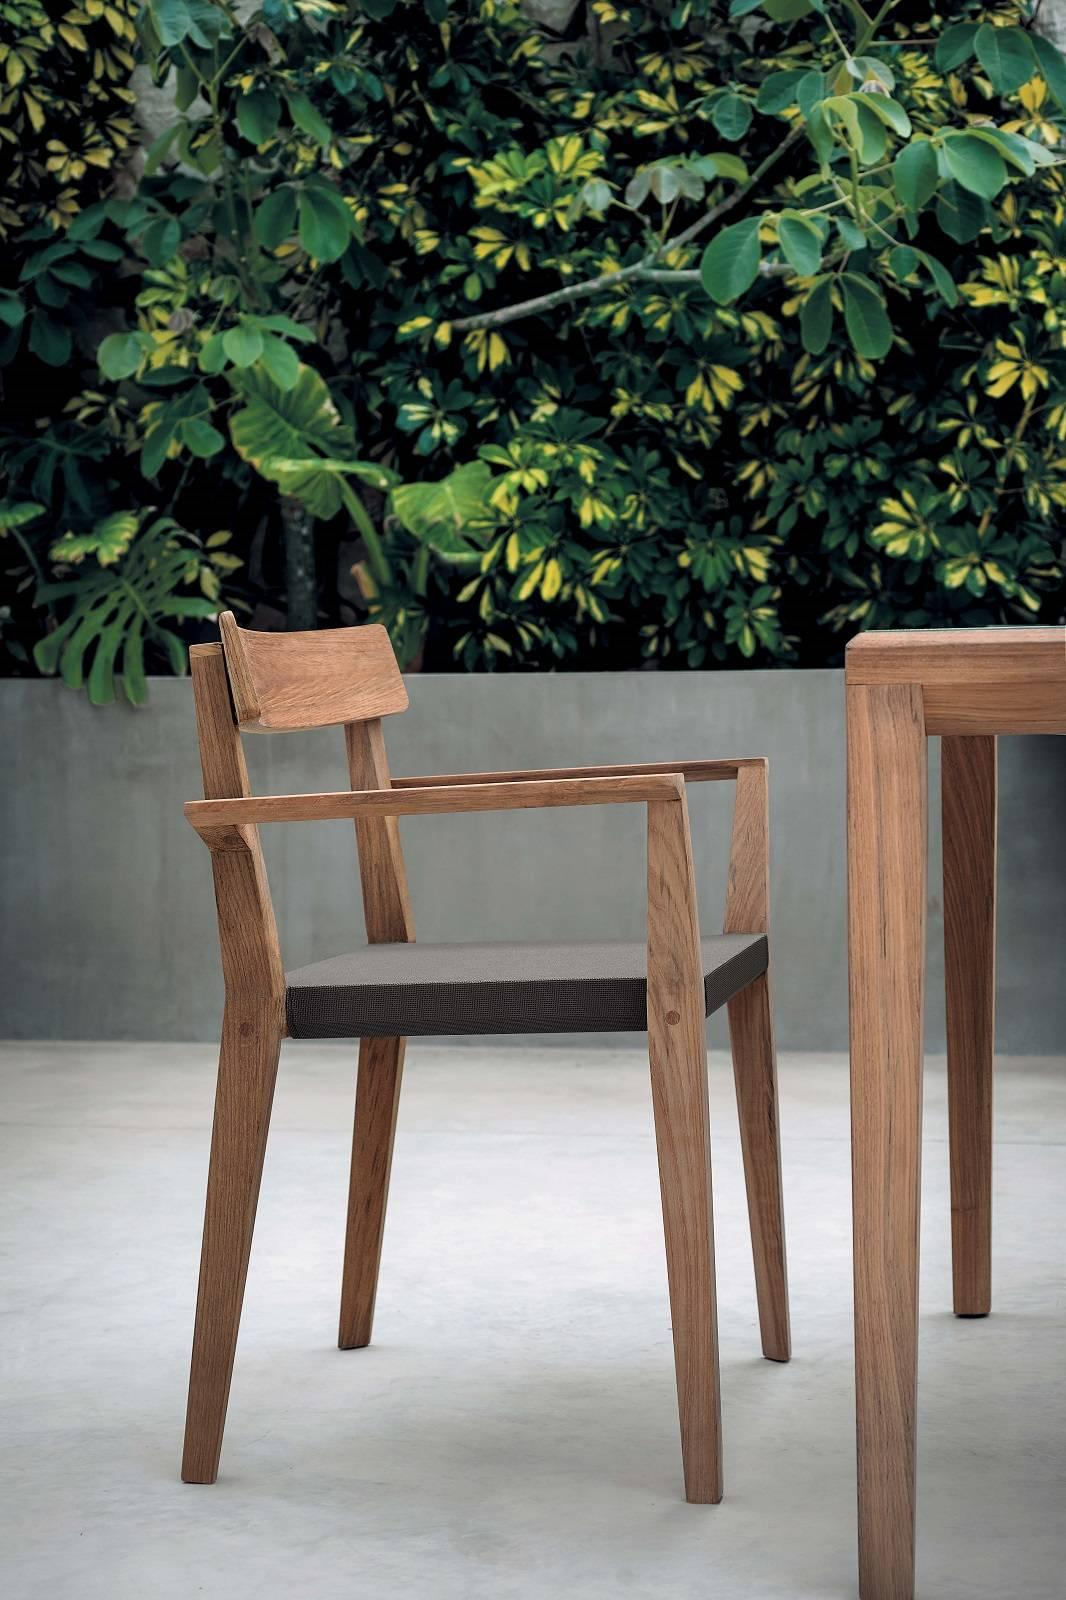 Roda Teka 171 Indoor/Outdoor Stacking Chair Designed By Gordon Guillaumier  For Sale At 1stdibs